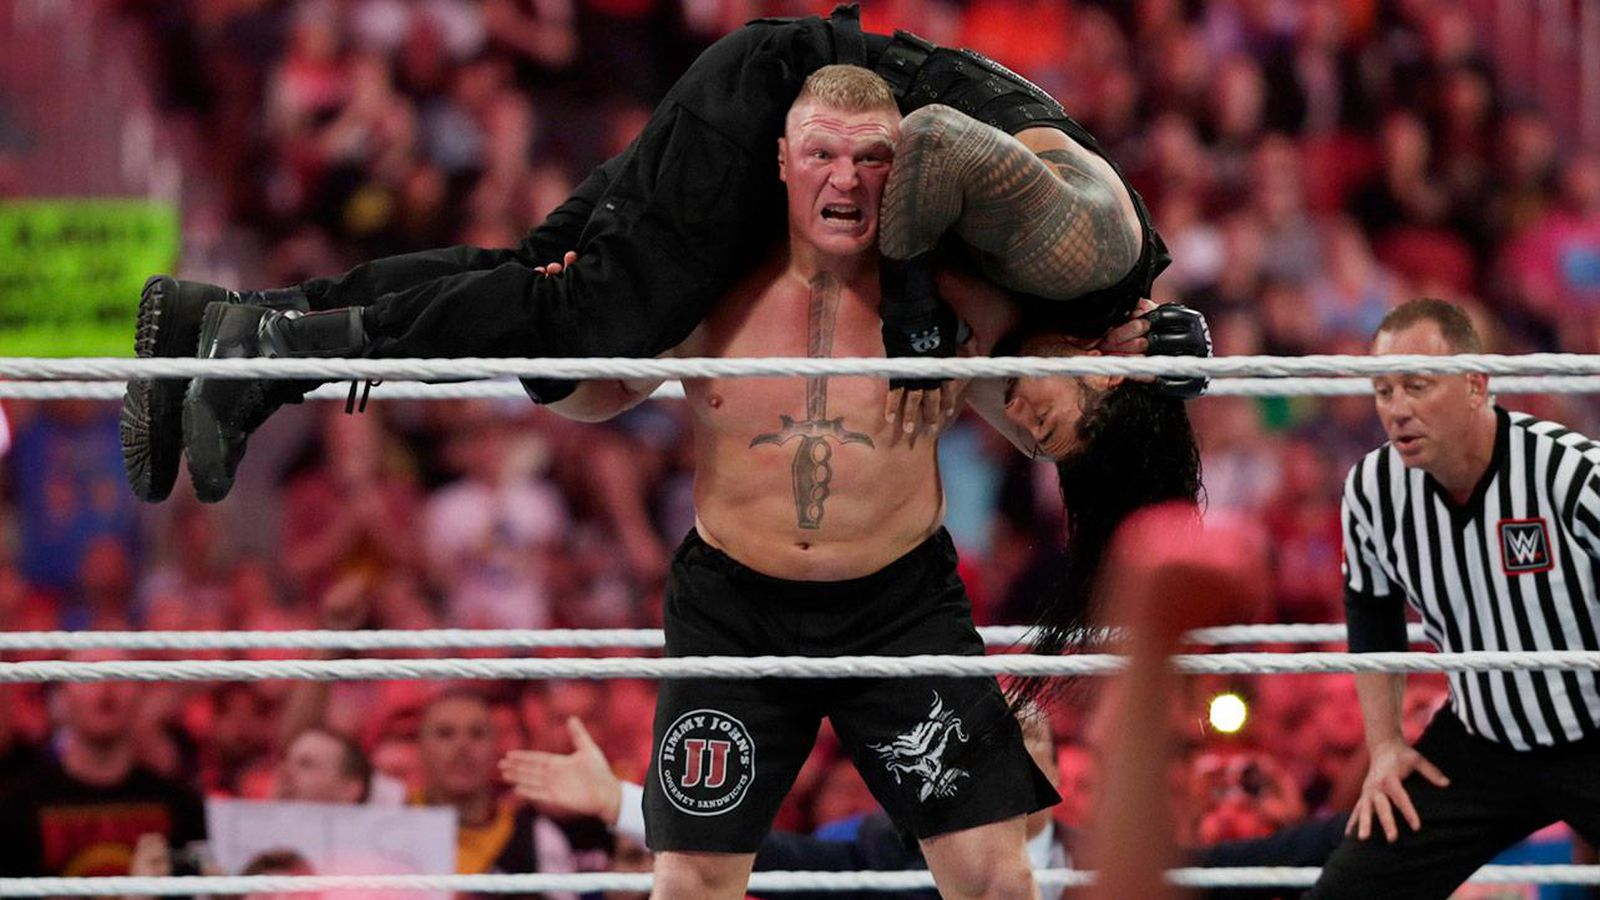 Why Brock Lesnar Vs Roman Reigns At Wrestlemania Worked Part 2